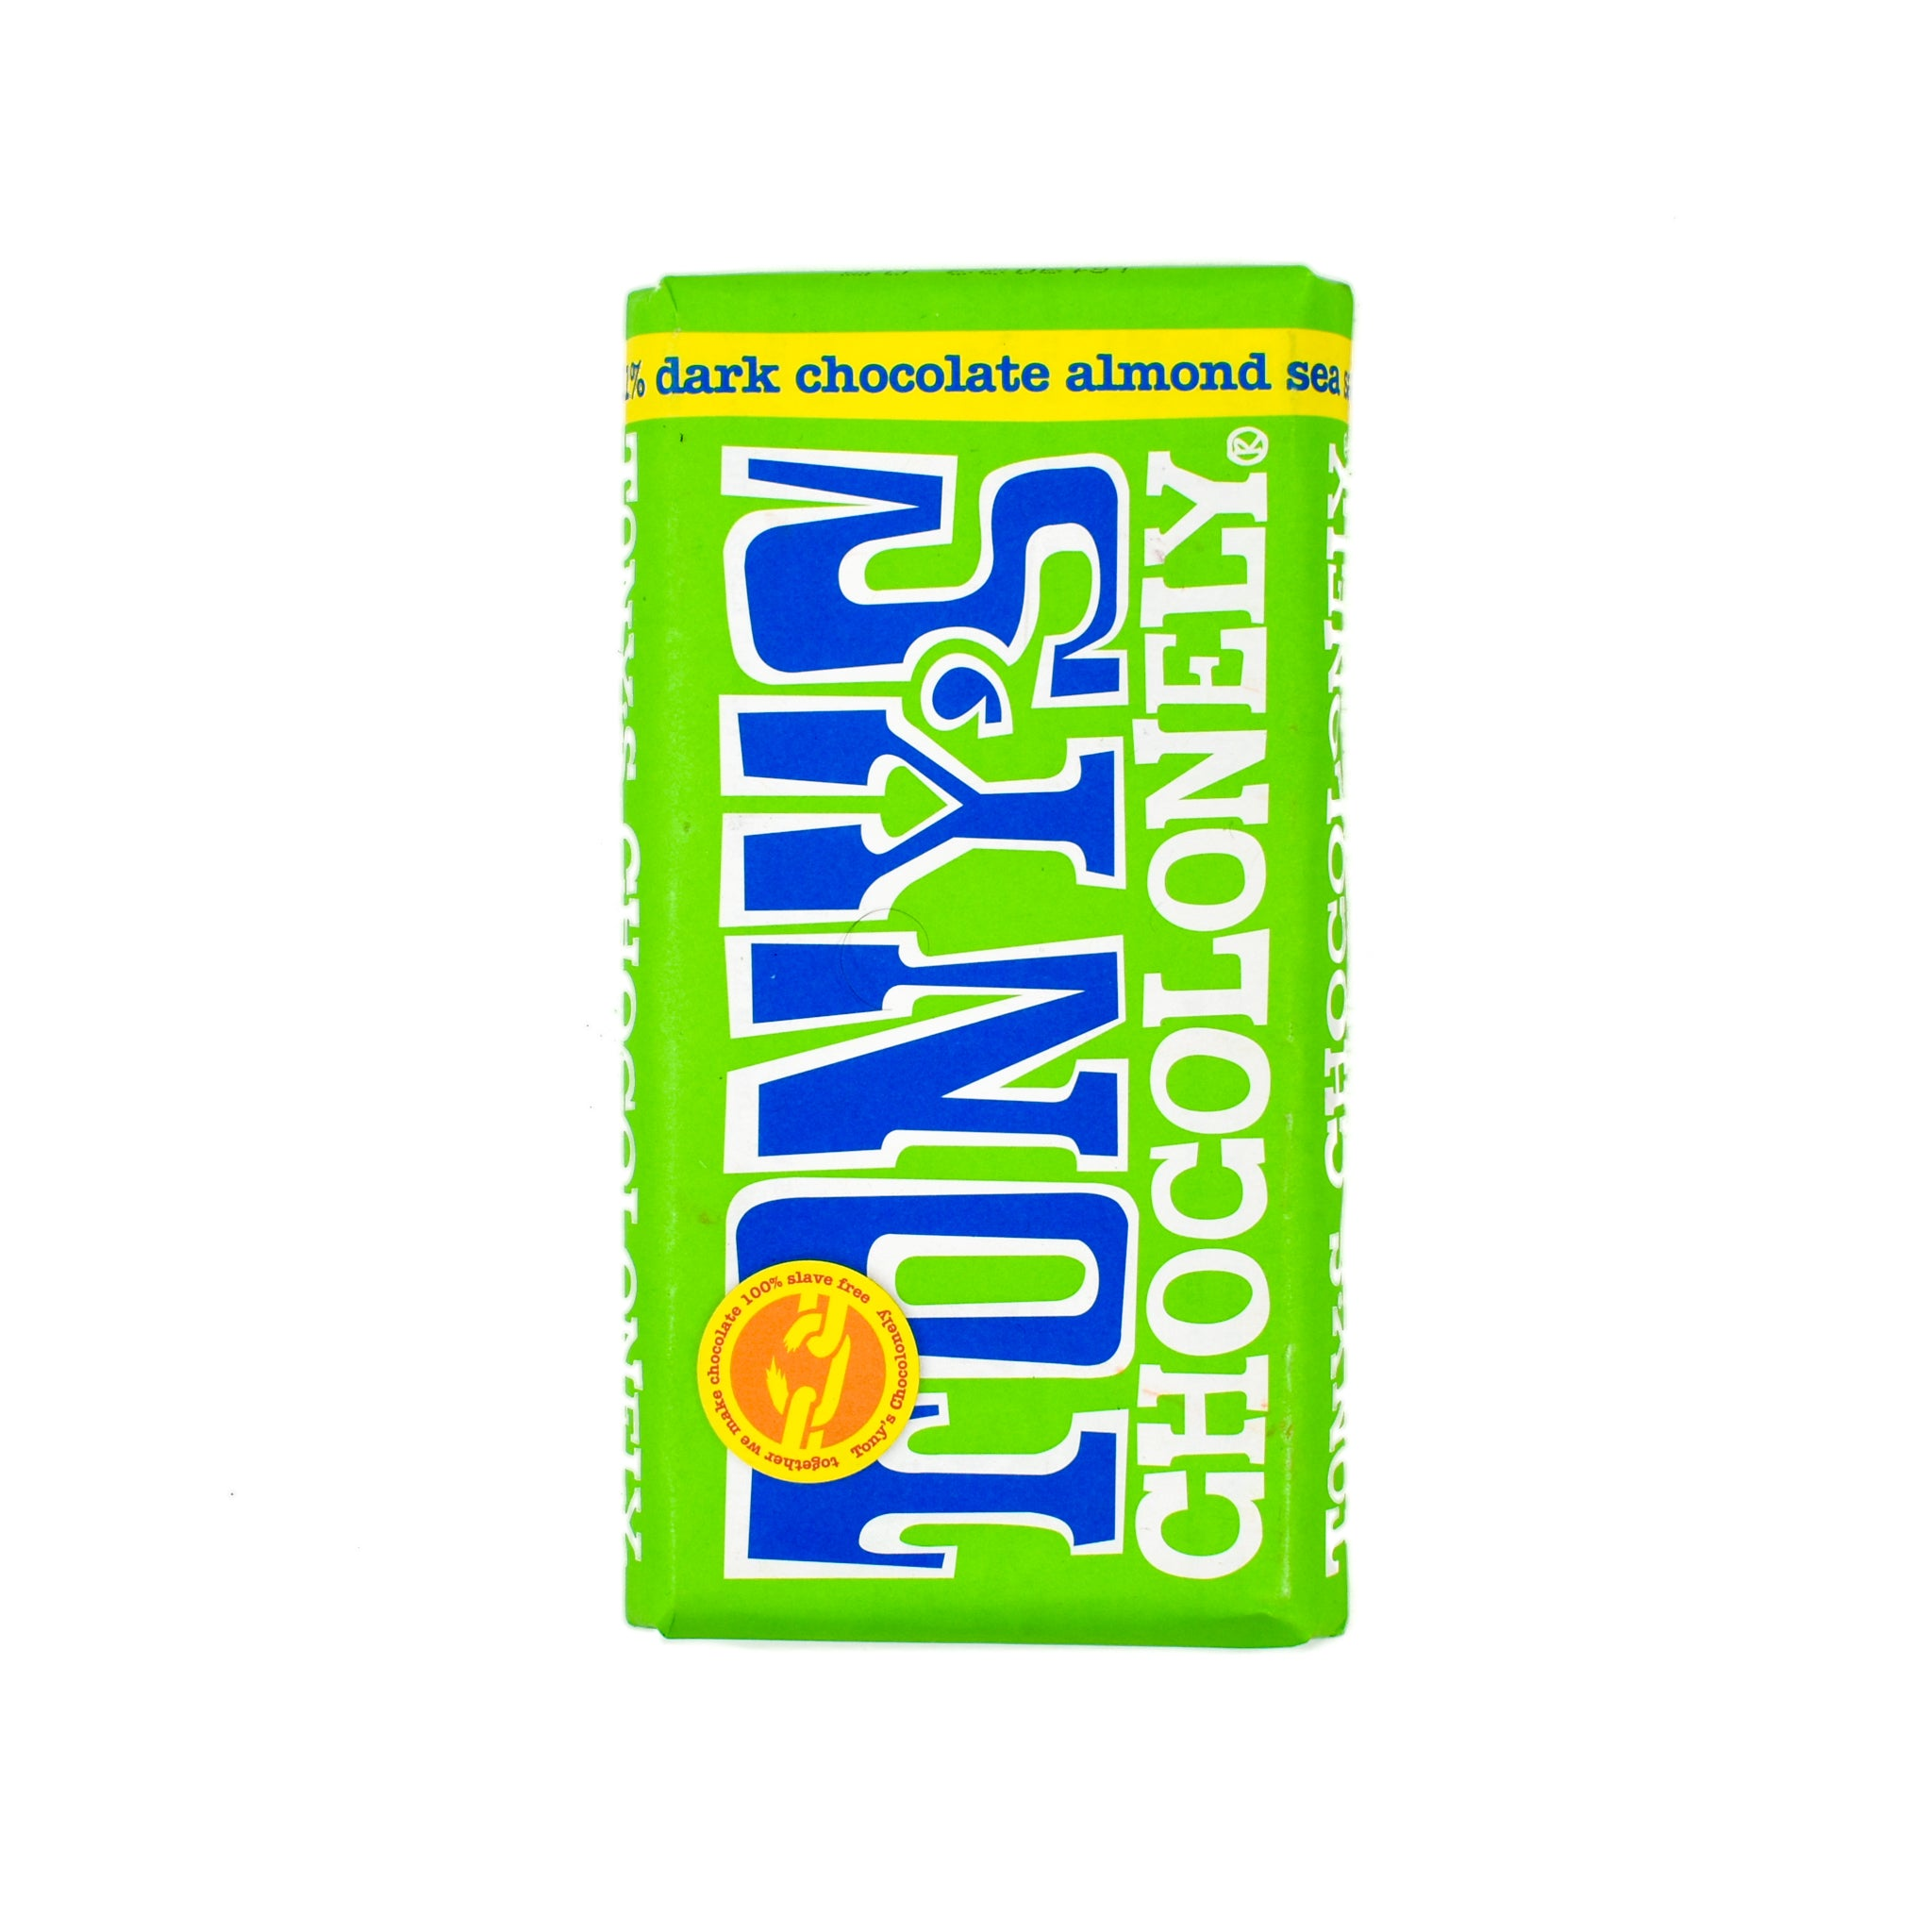 Tony's Chocolonely Dark Chocolate Almonds & Sea Salt 180g Ingredients Chocolate Bars & Confectionery